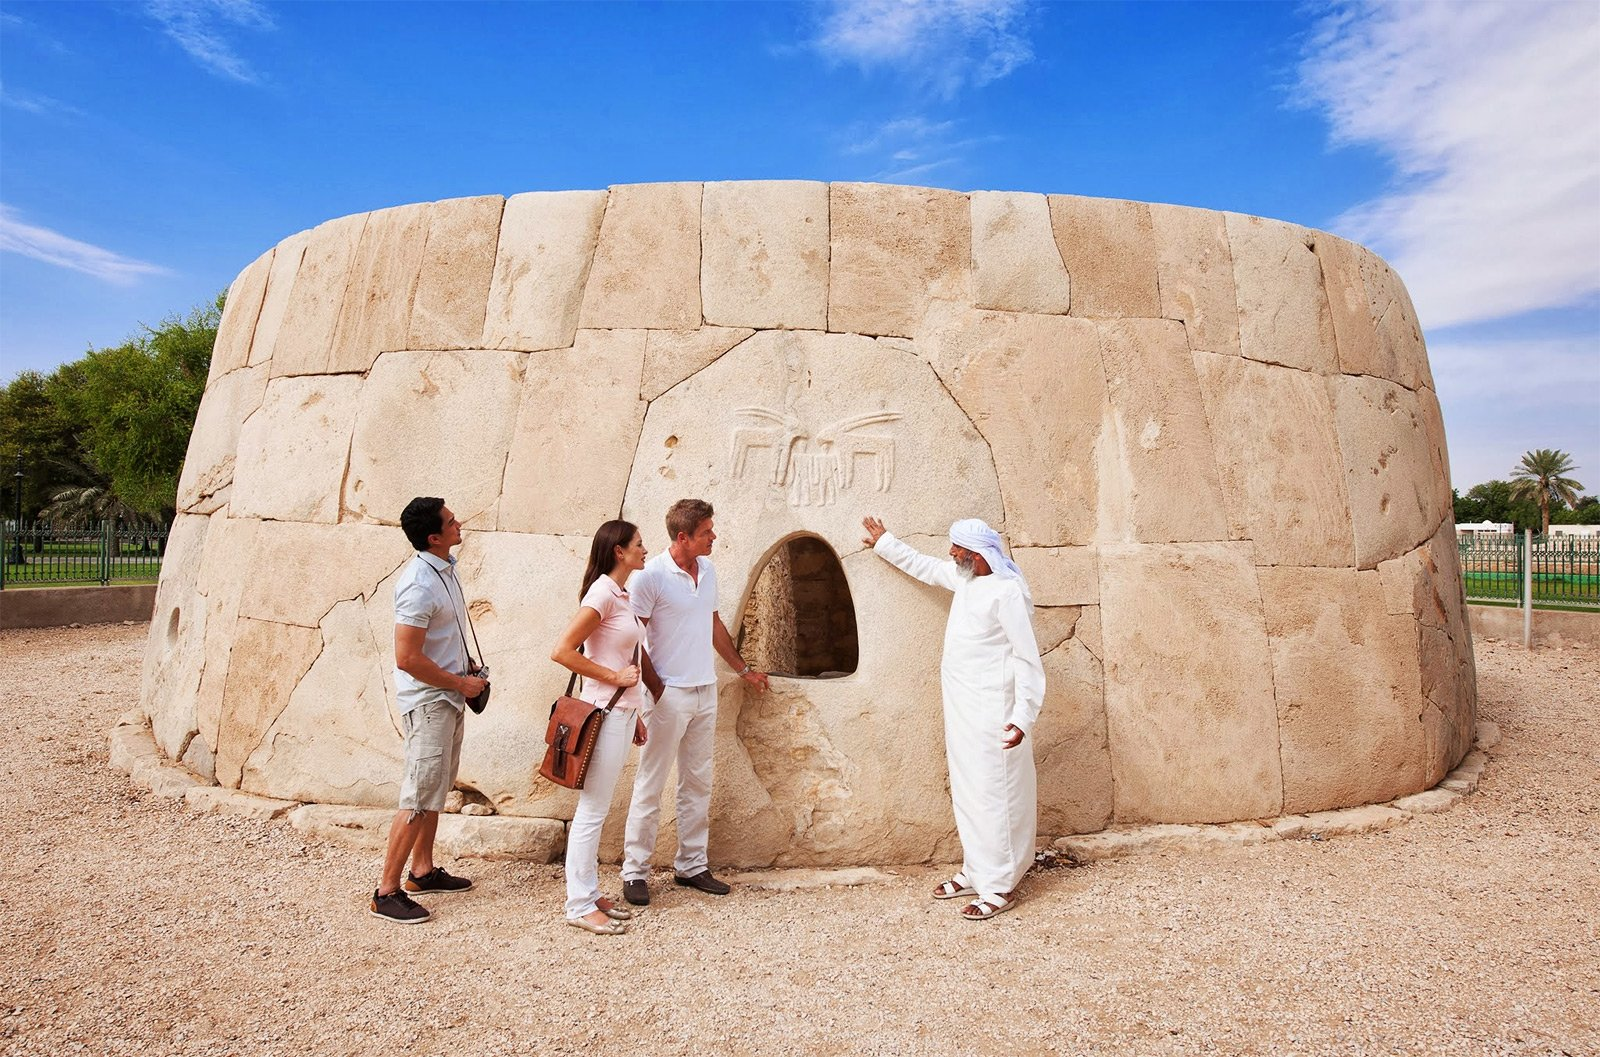 How to see the Hili Tomb in Al Ain